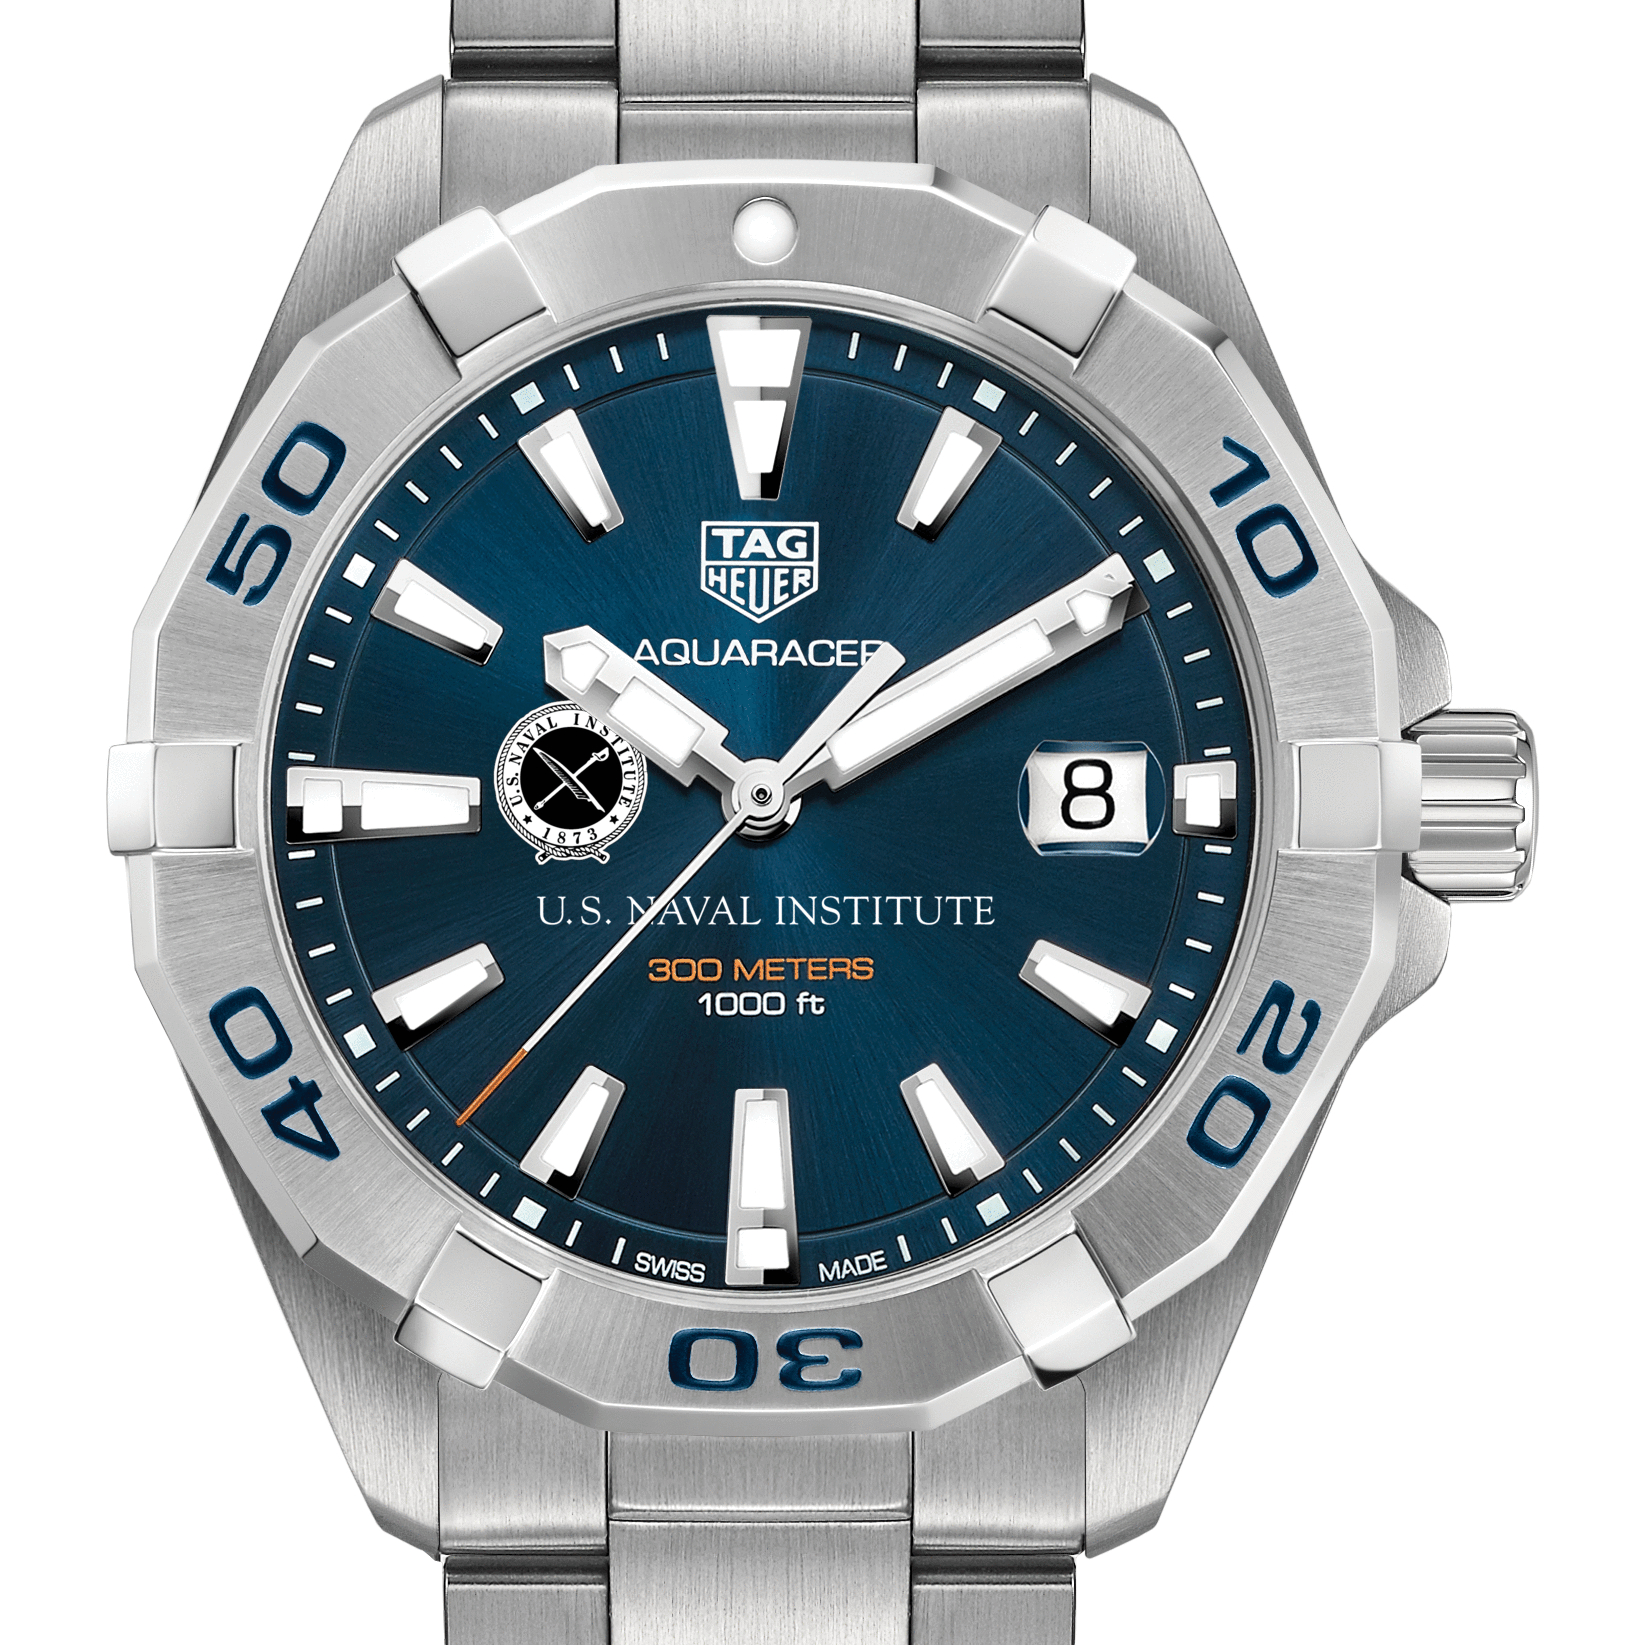 US Naval Institute Men's TAG Heuer Steel Aquaracer with Blue Dial